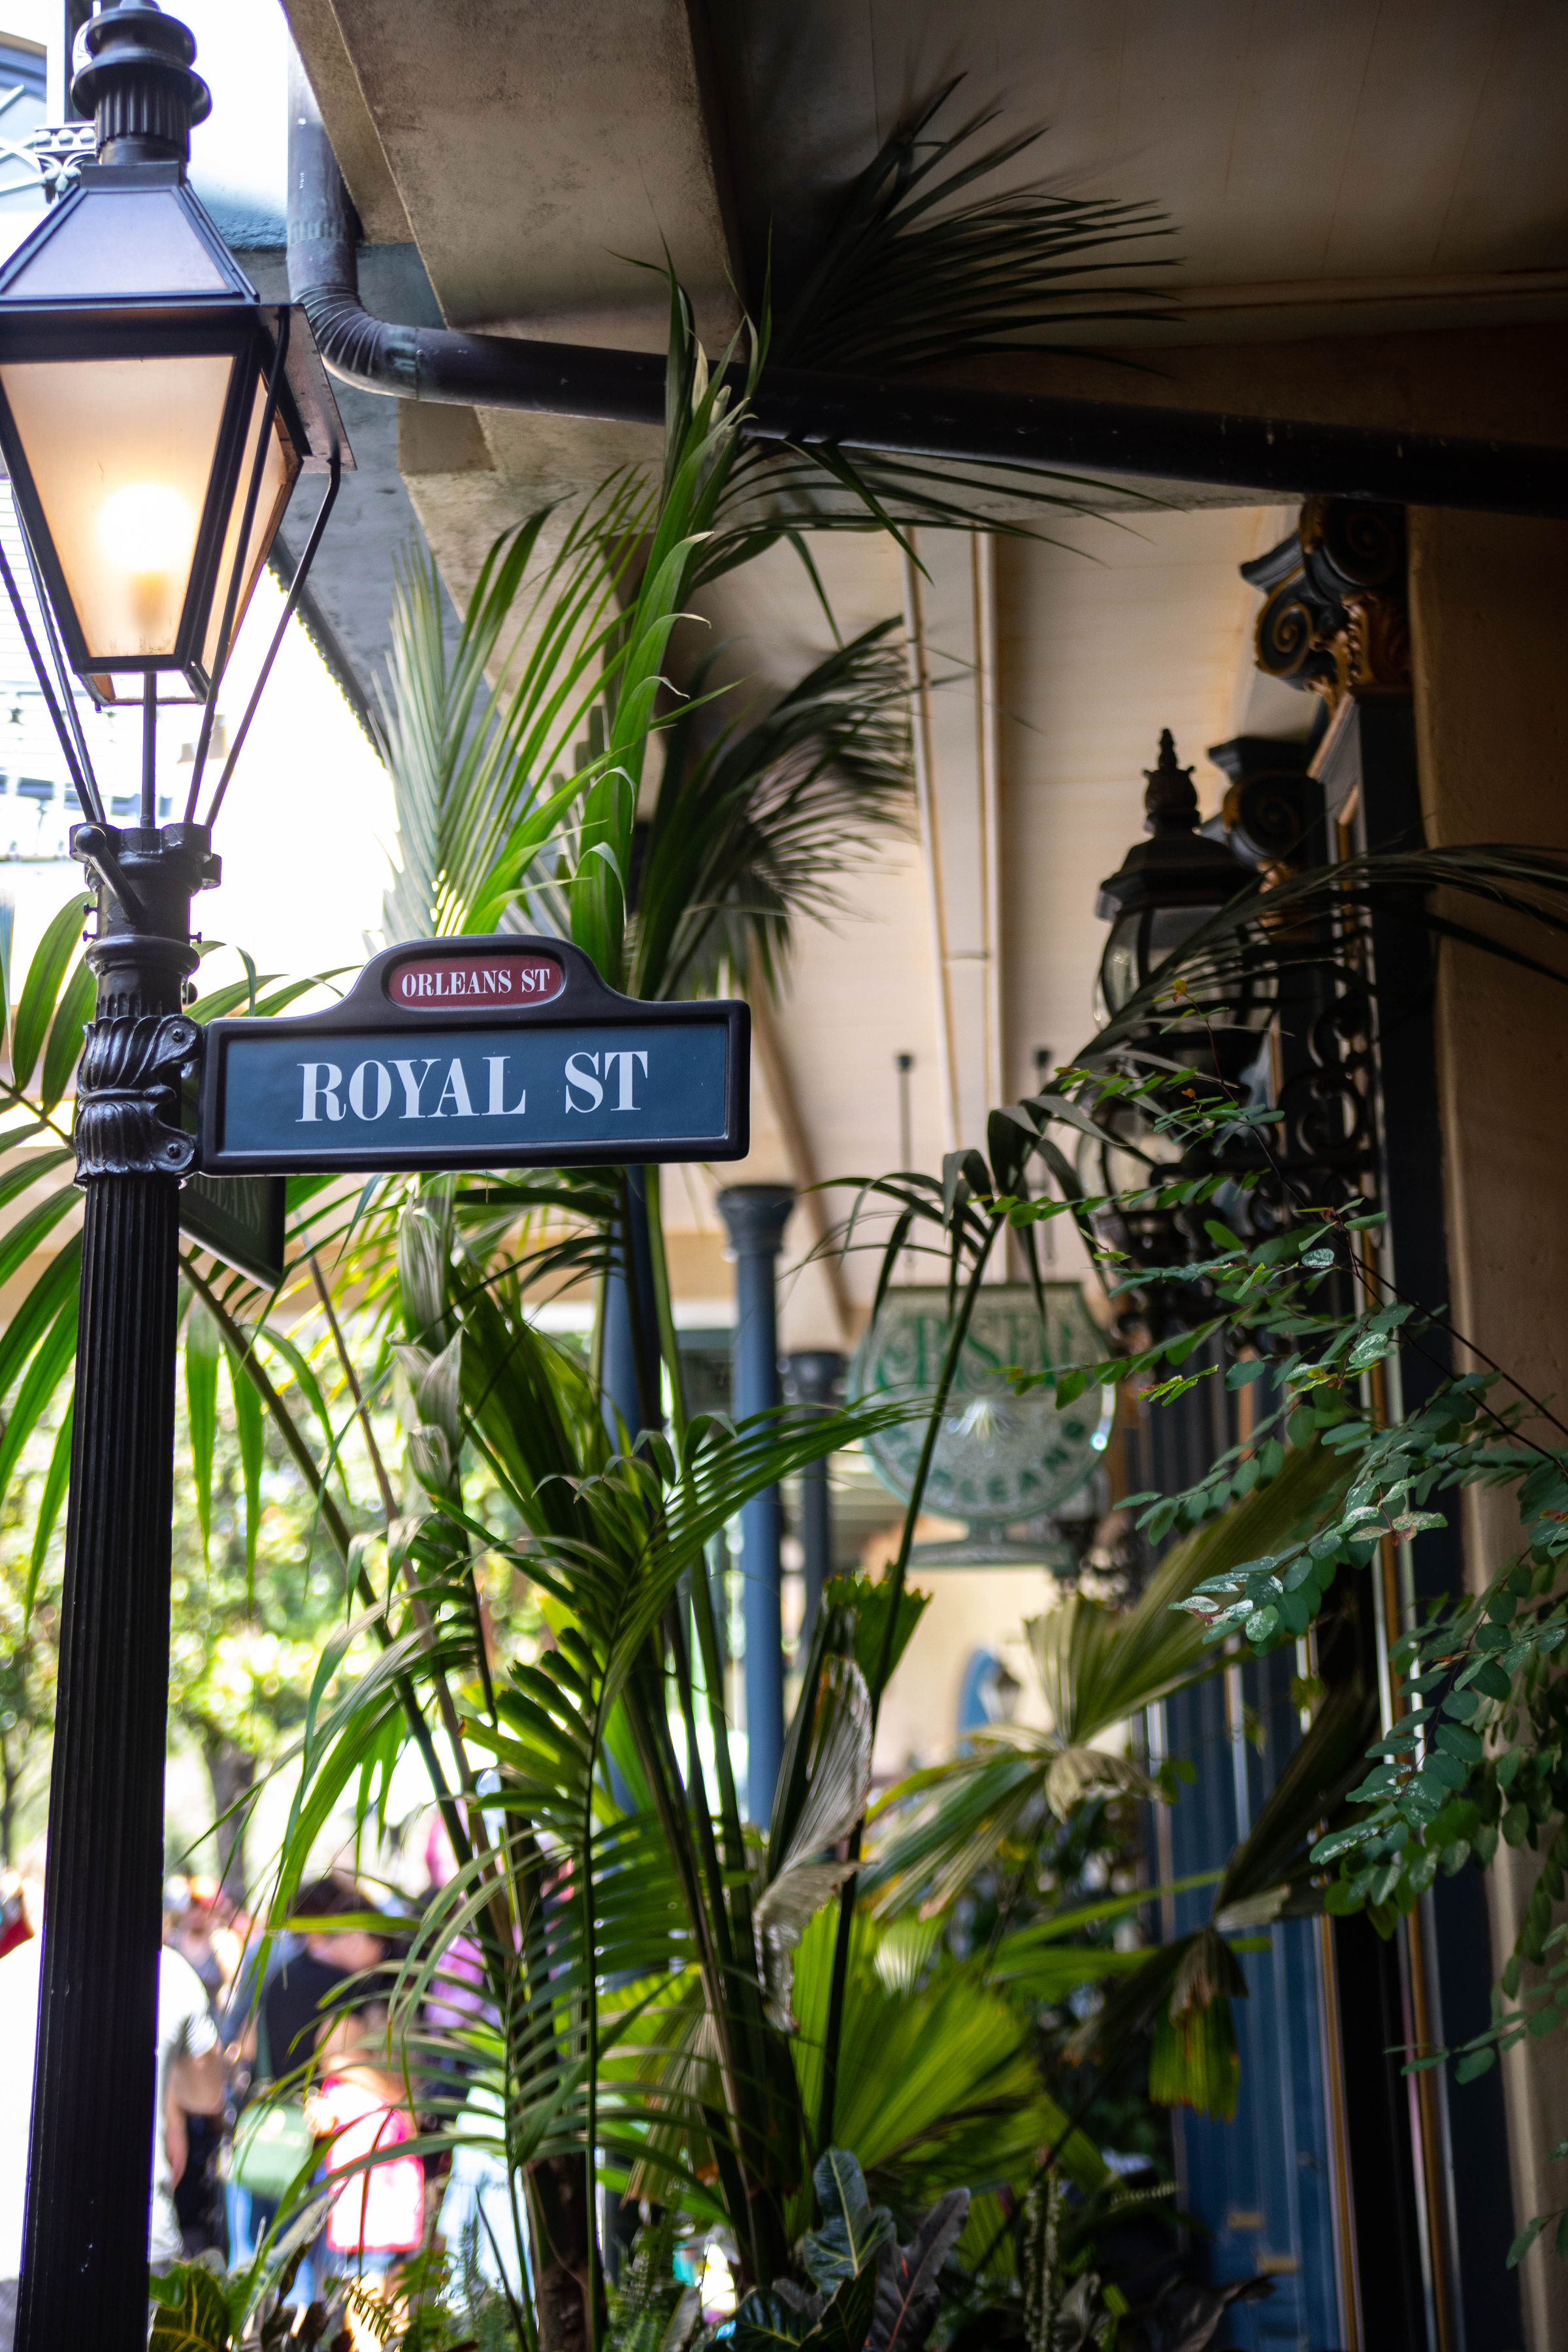 Disneyland The Ultimate Travel Guide by Annie Fairfax Disneyland Travel Tips Advice New Orlean's Square Royal St.